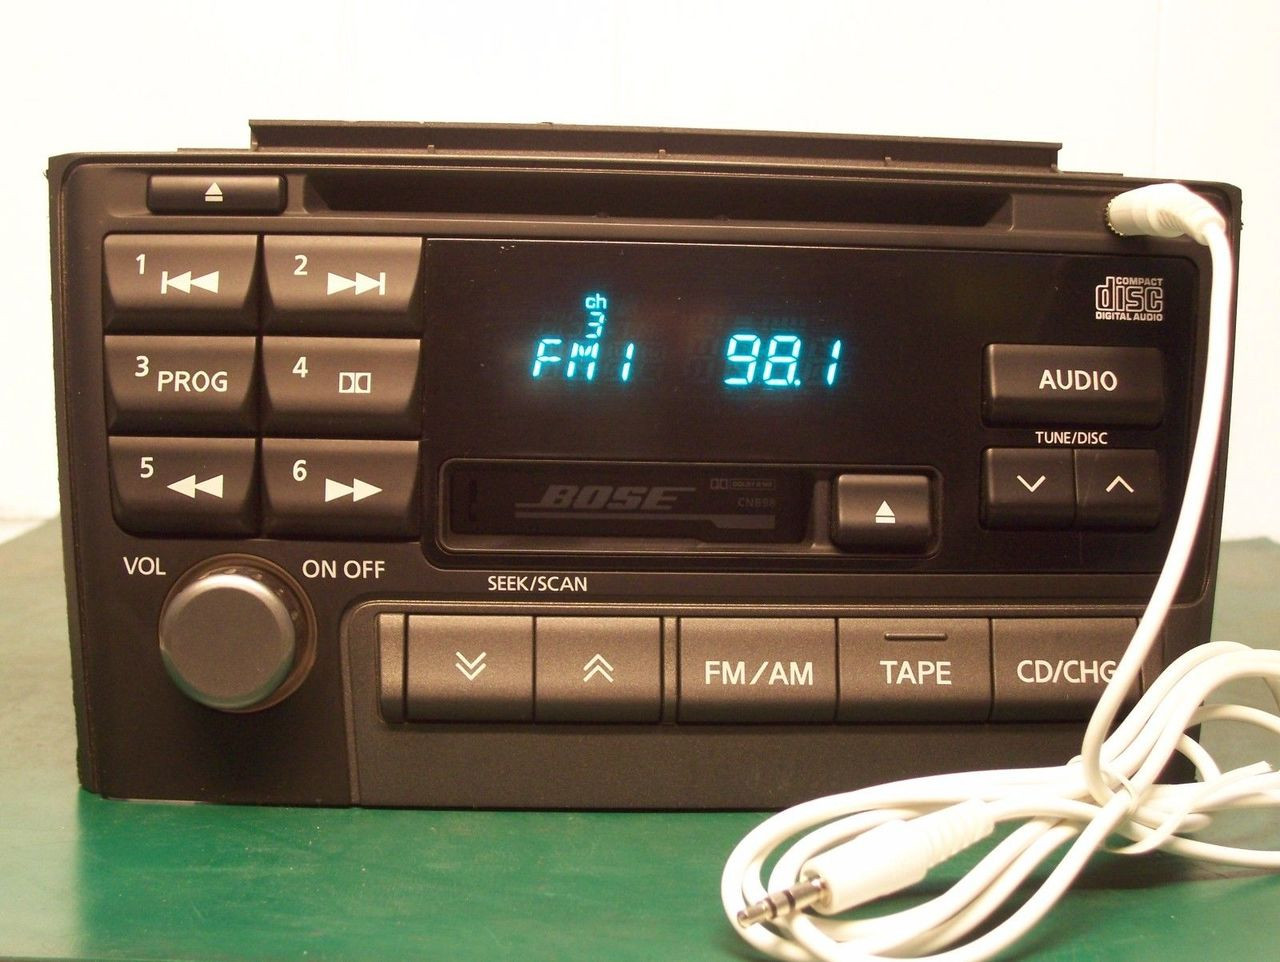 hight resolution of details about 2000 2003 nissan maxima bose radio cd player added aux input cnb98